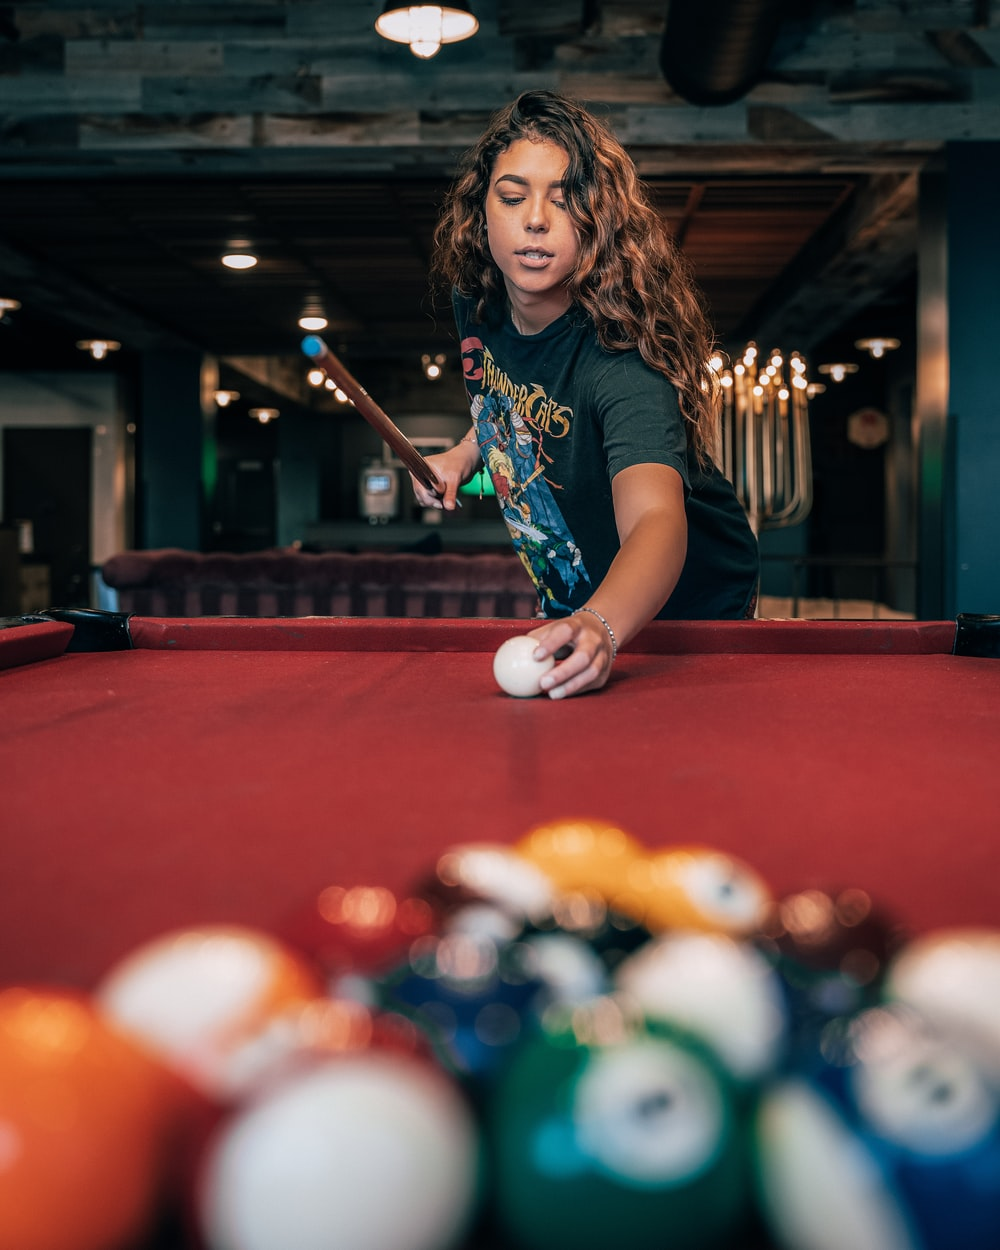 girl in blue and white crew neck t-shirt playing billiard